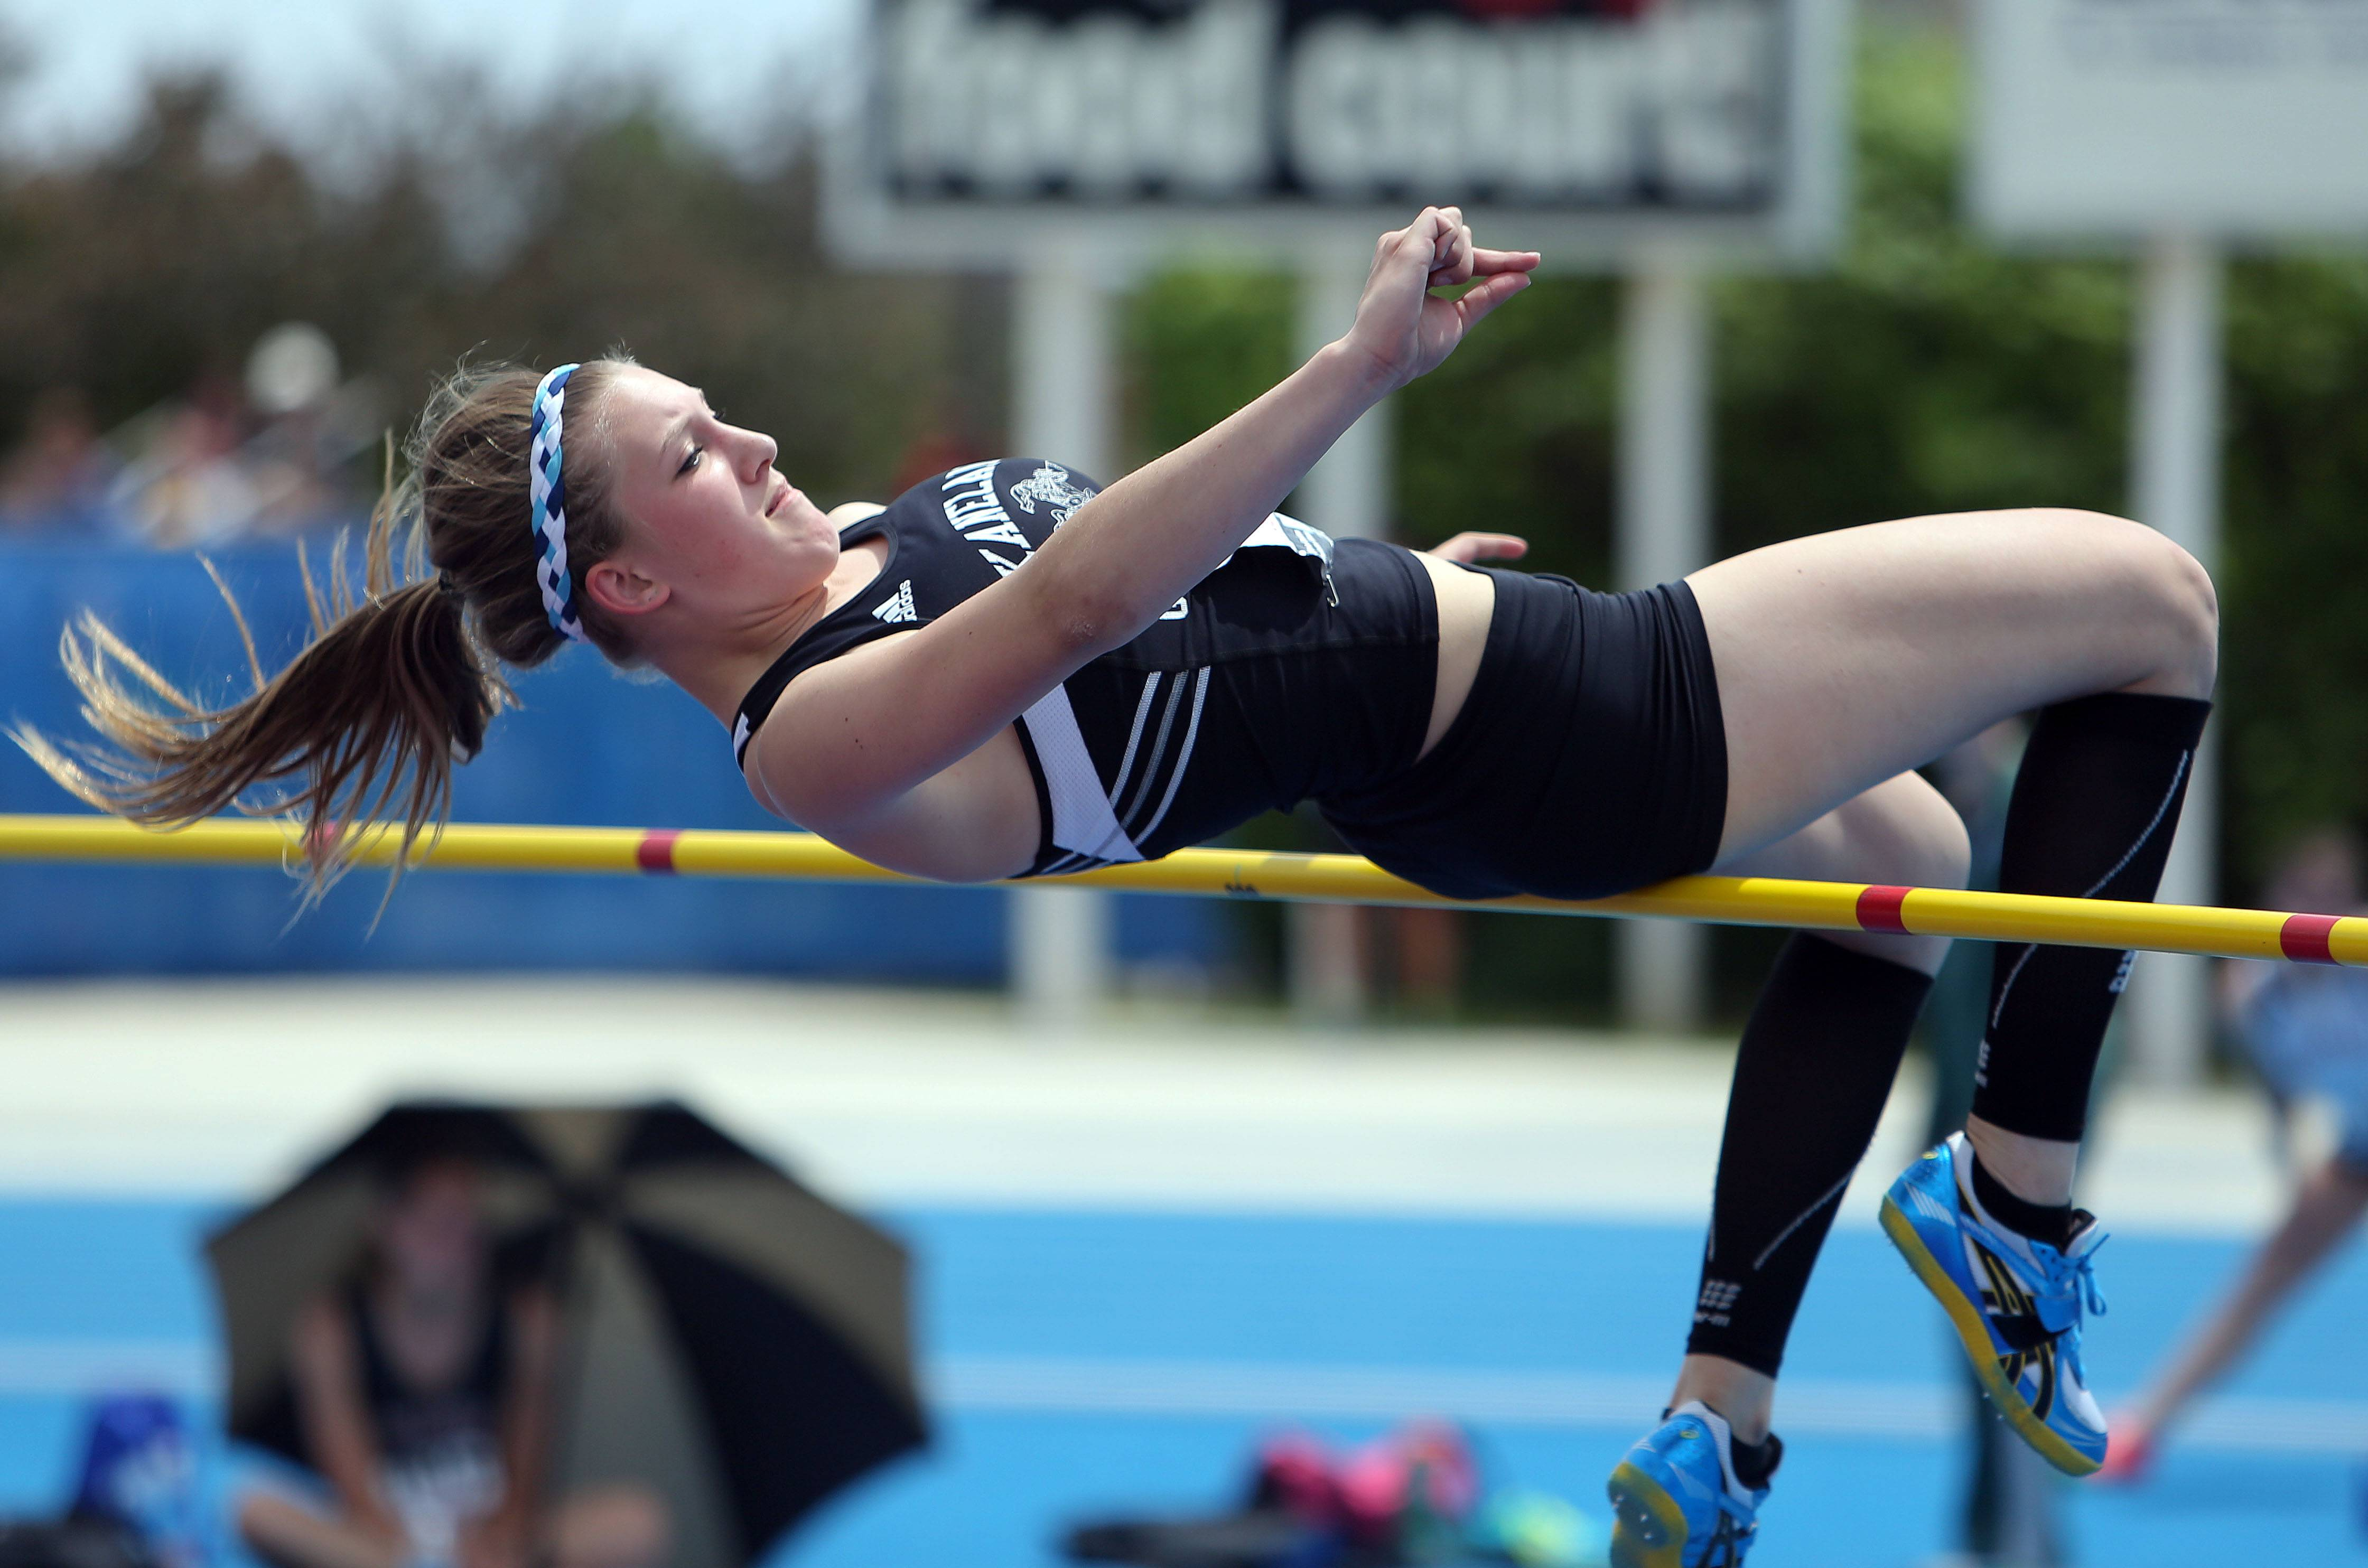 Kaneland's Maddie Keifer competes in the class 2A high jump during the girls track and field state finals at Eastern Illinois University in Charleston Saturday.